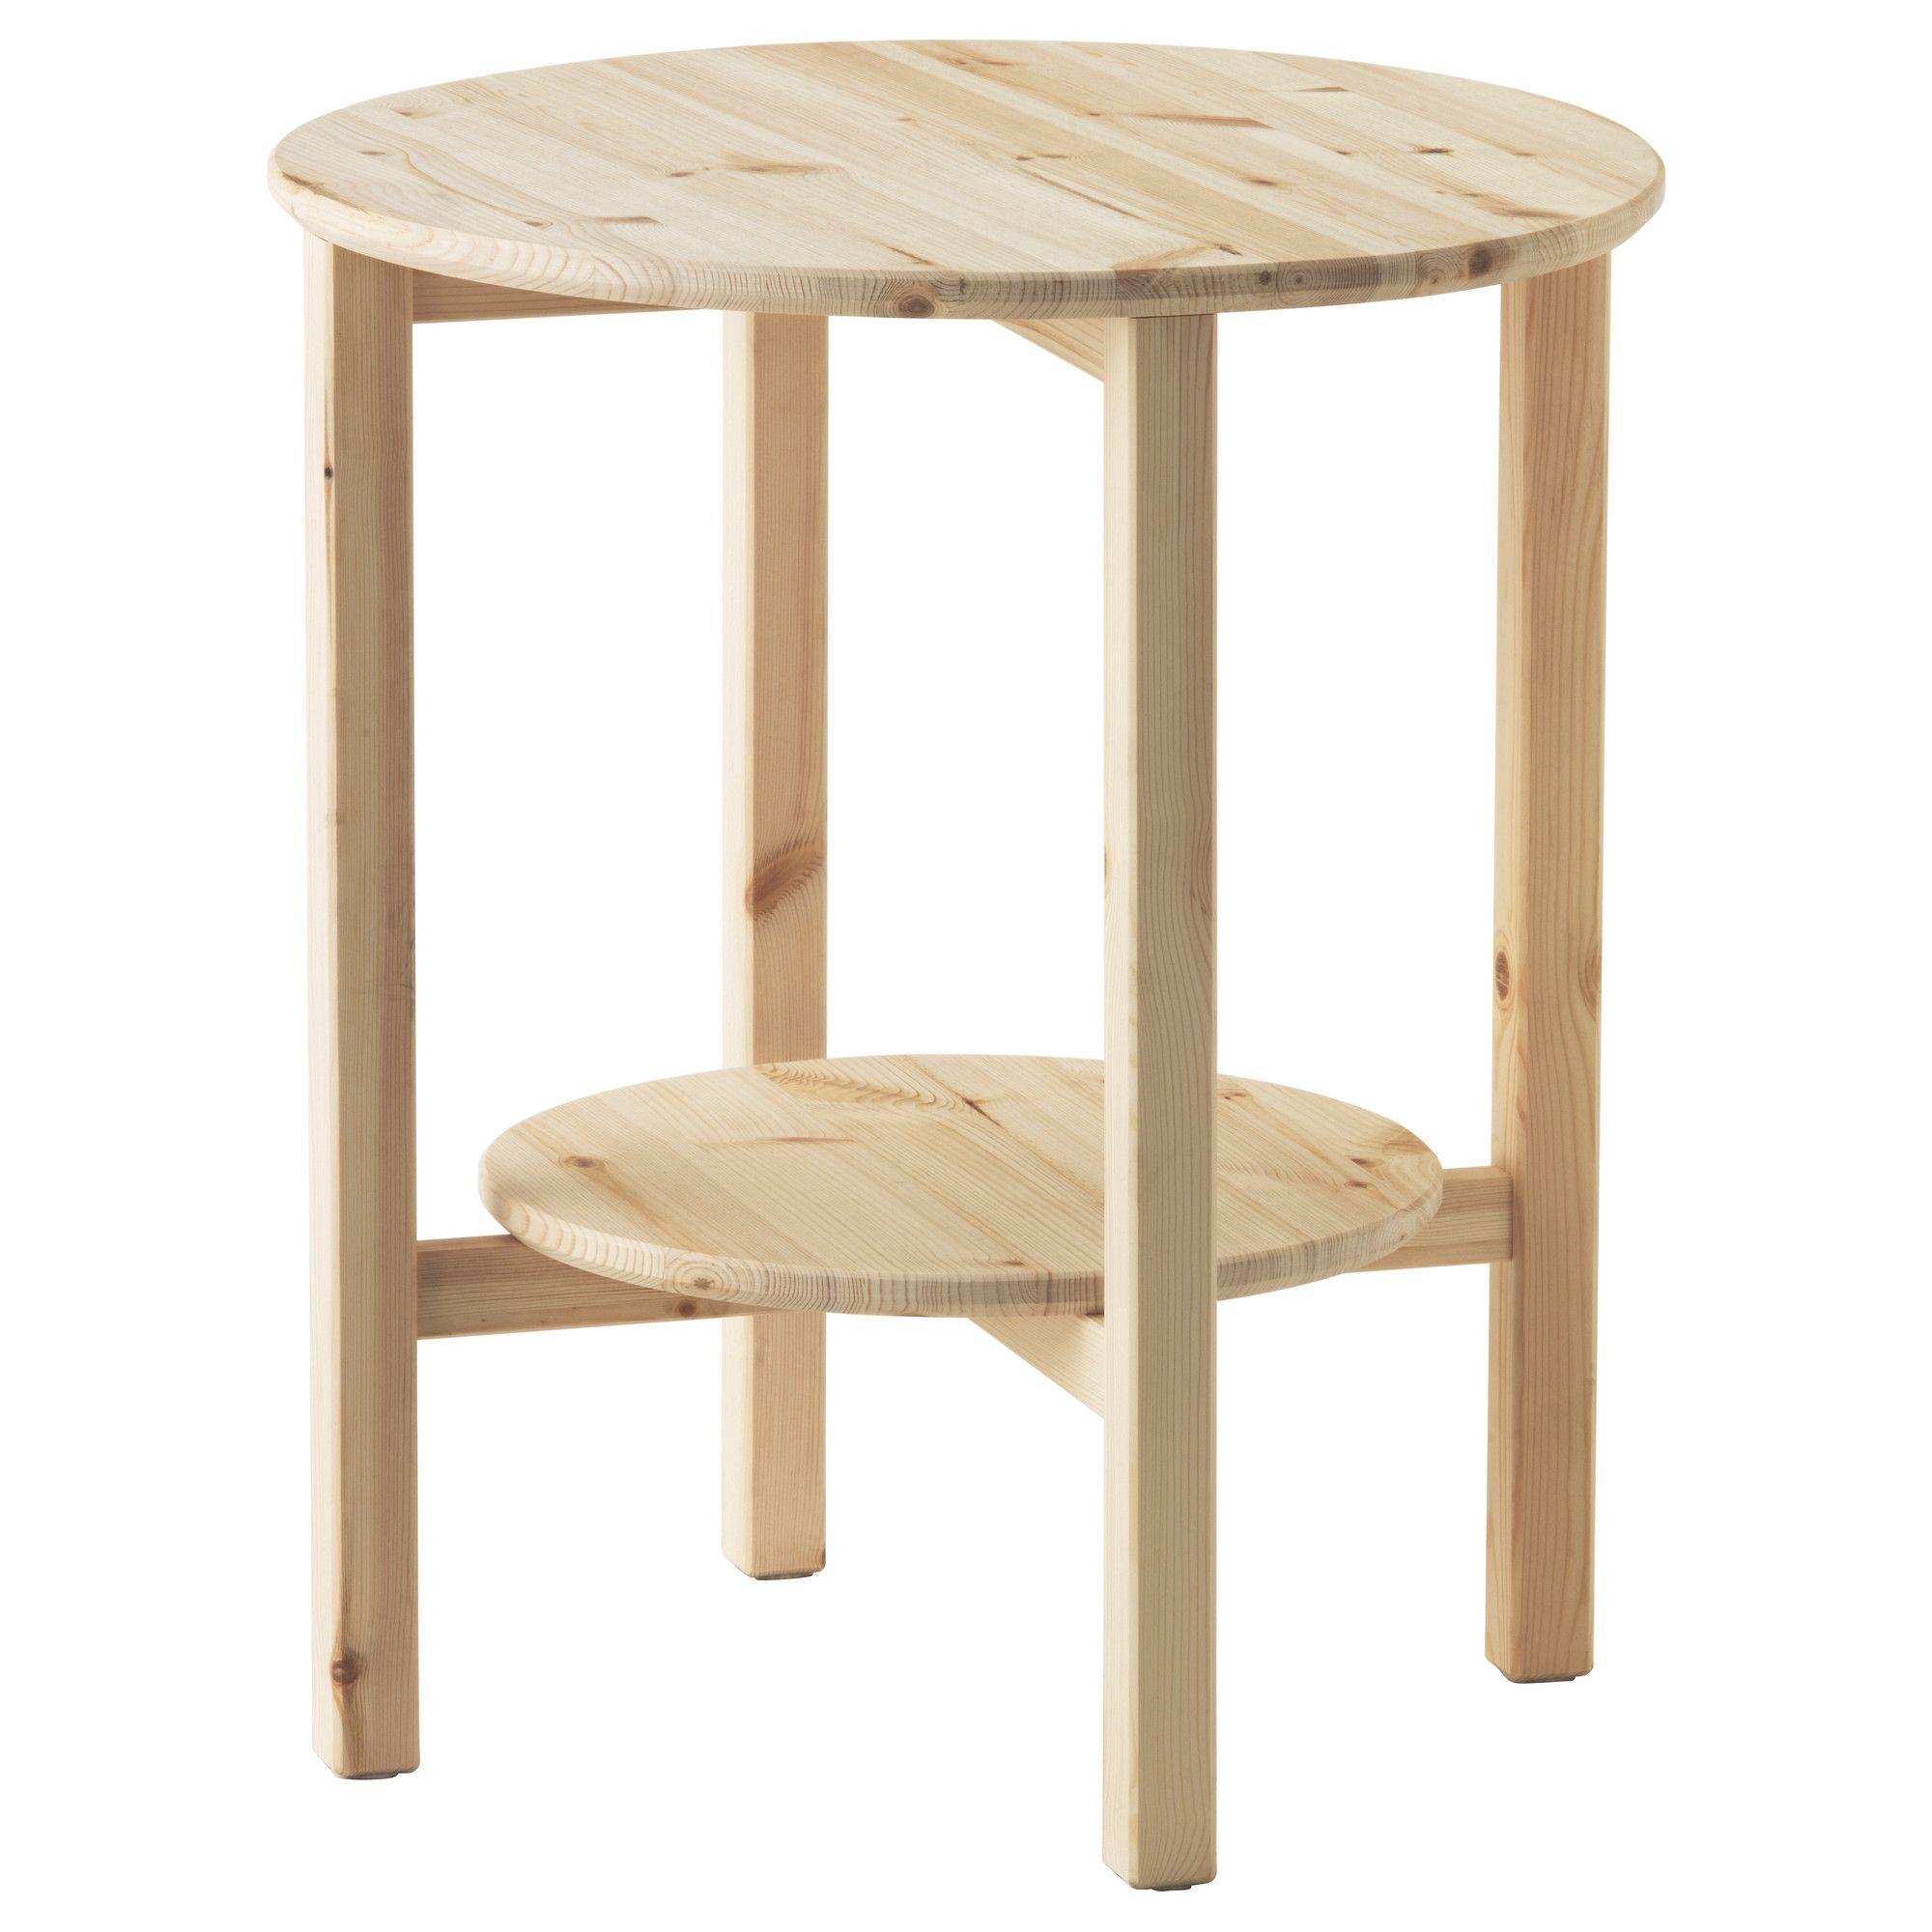 Ikea Coffee Table Material: NORNÄS, Side Table, , Untreated Solid Pine Is A